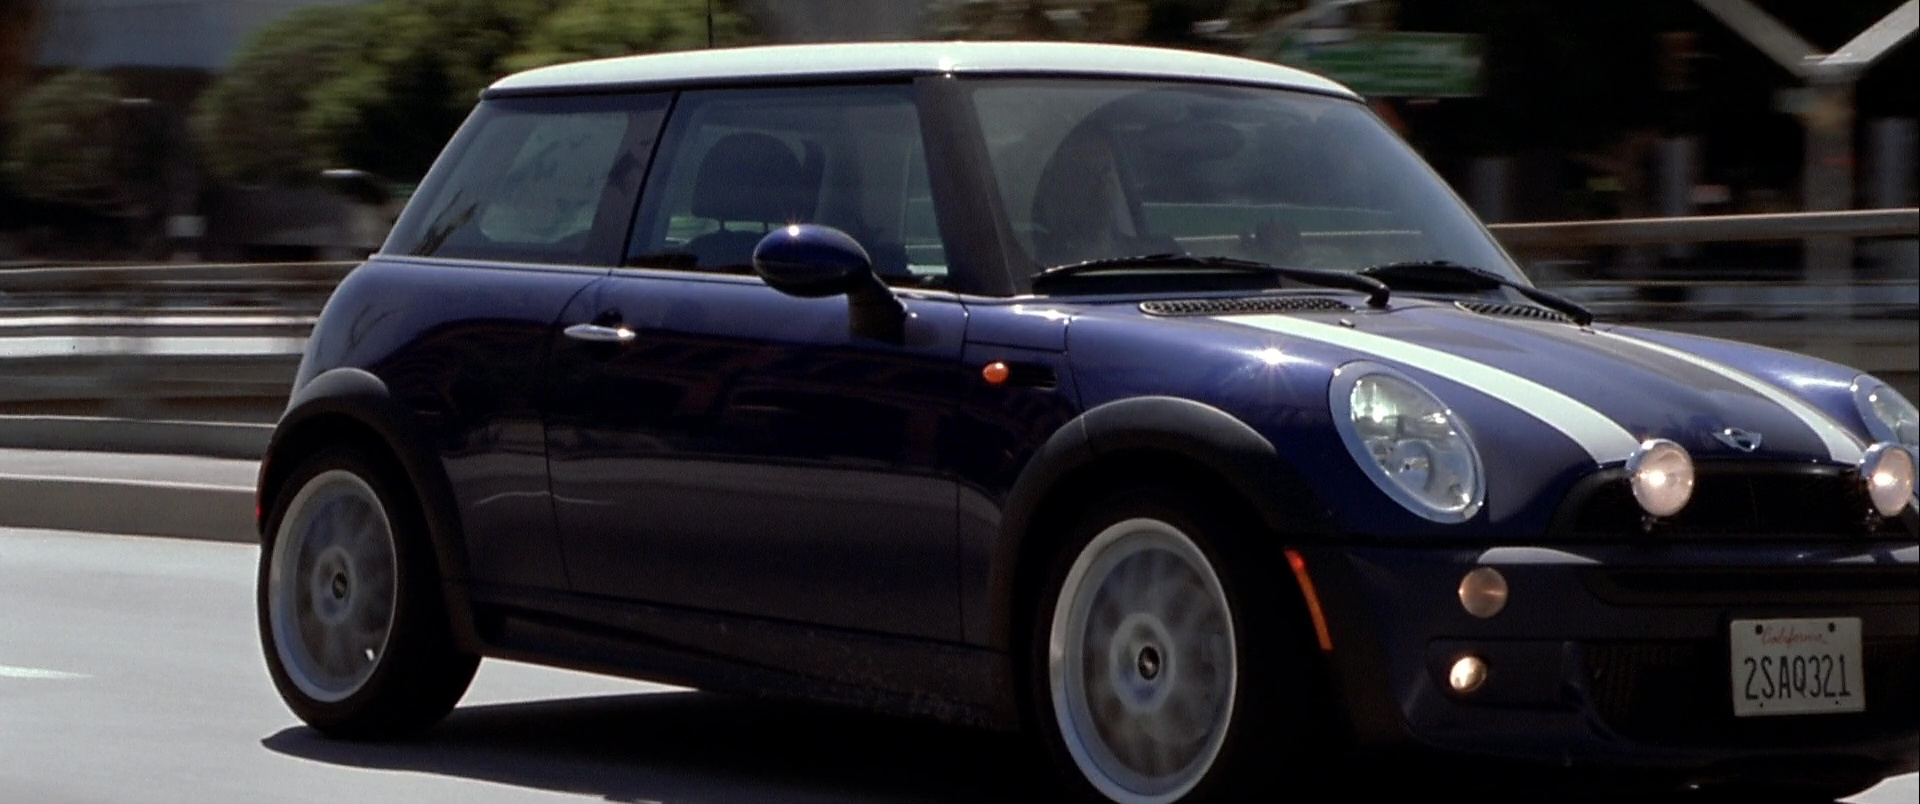 Italian Car Brands >> MINI Cooper S Blue Car Used by Mark Wahlberg in The Italian Job (2003) Movie